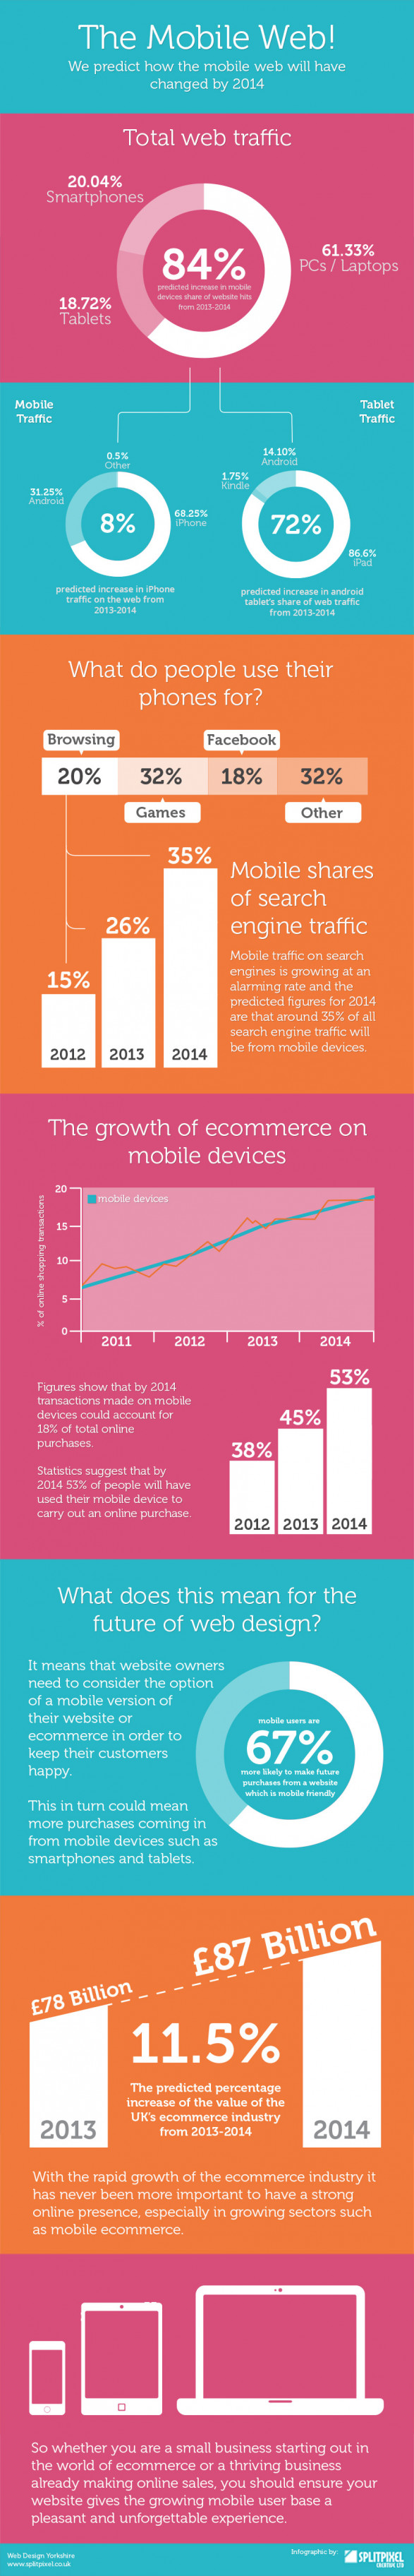 Predictions for Mobile Ecommerce 2014